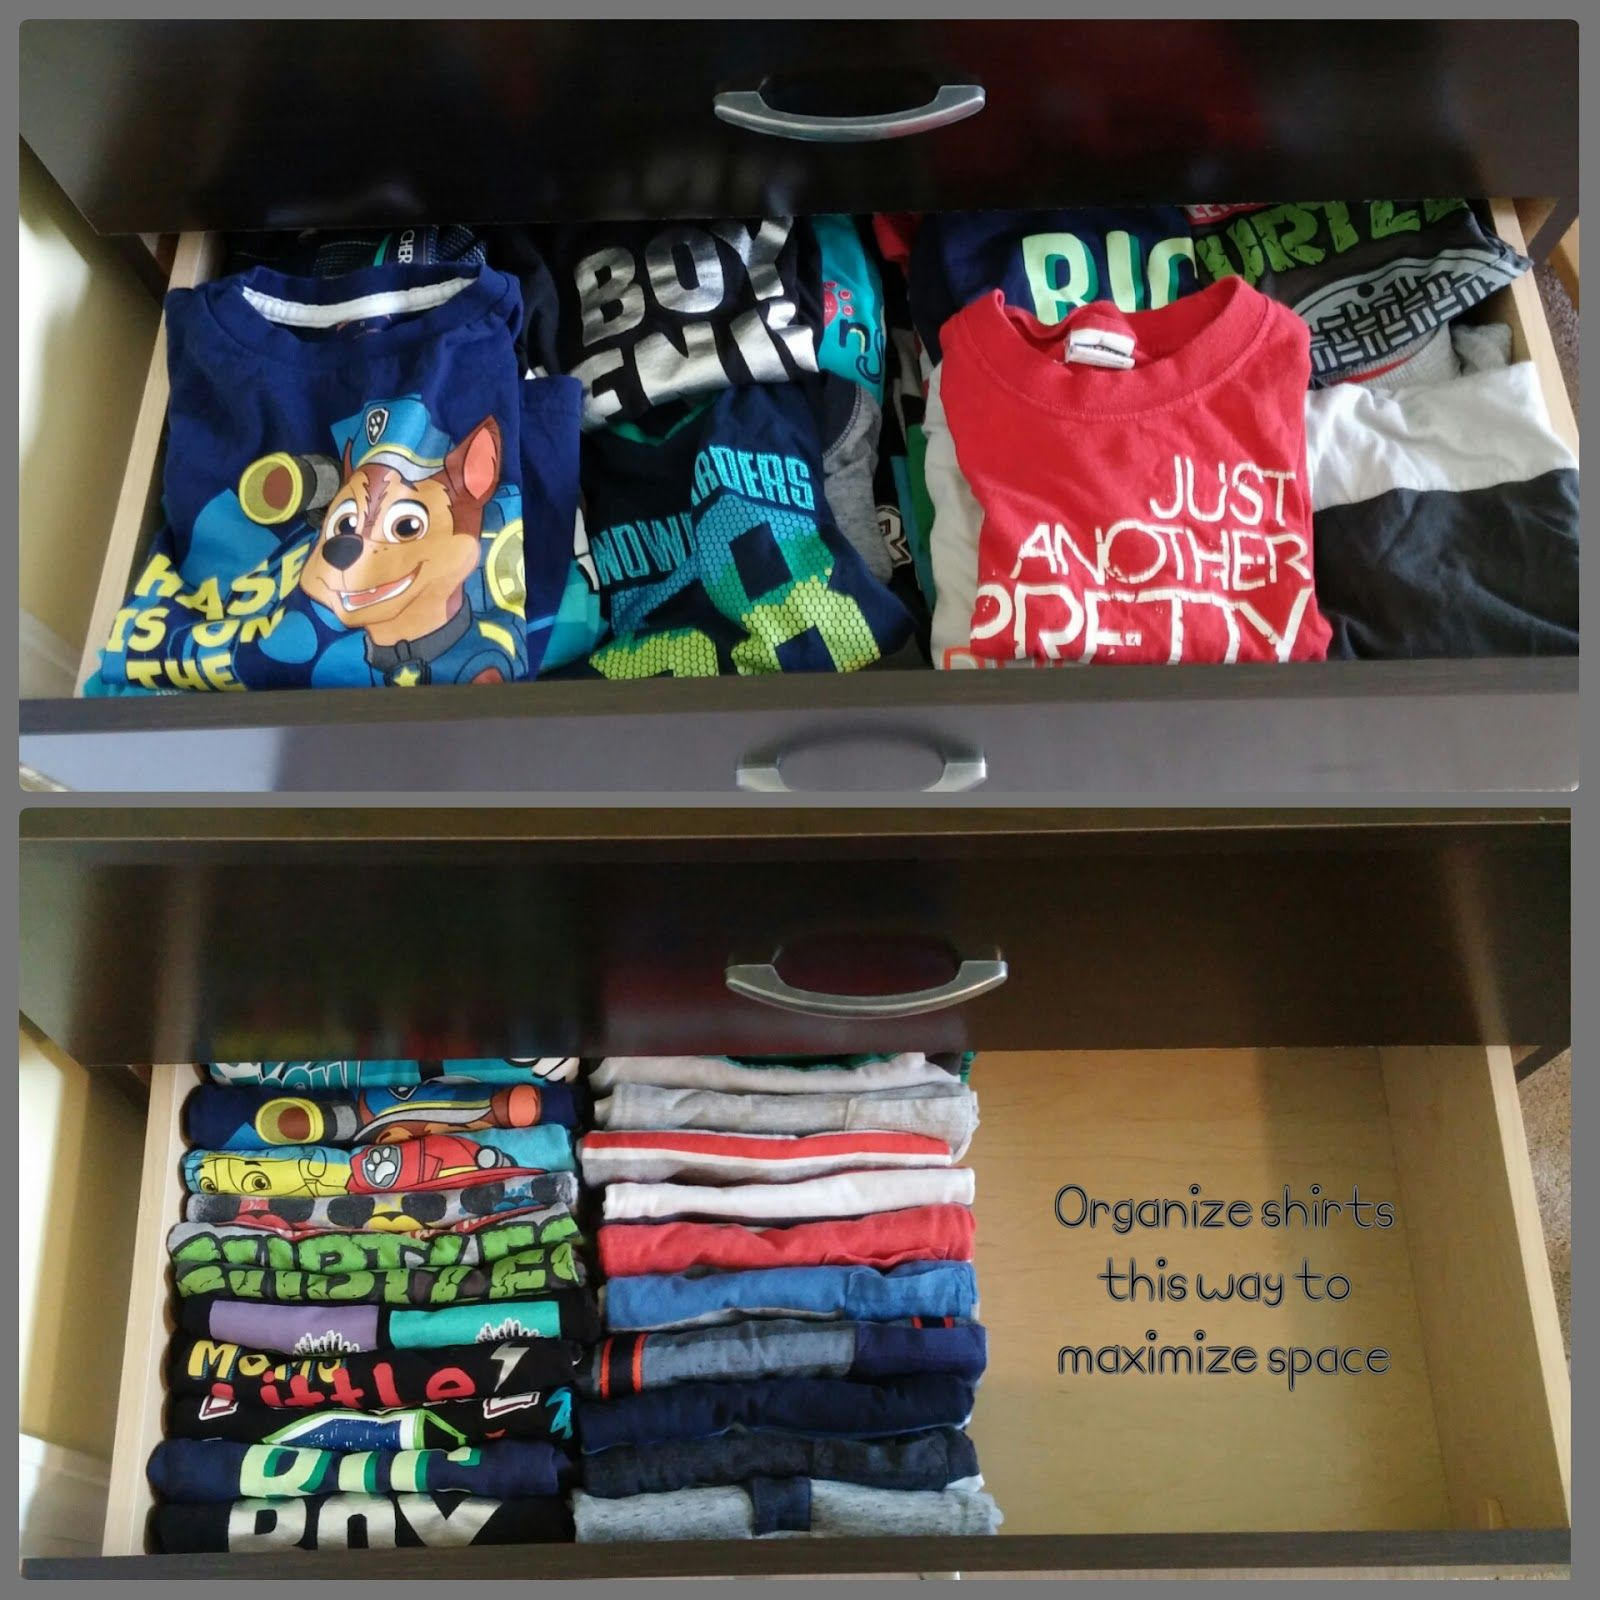 Restore Order Organizing Kids Clothes In Drawers